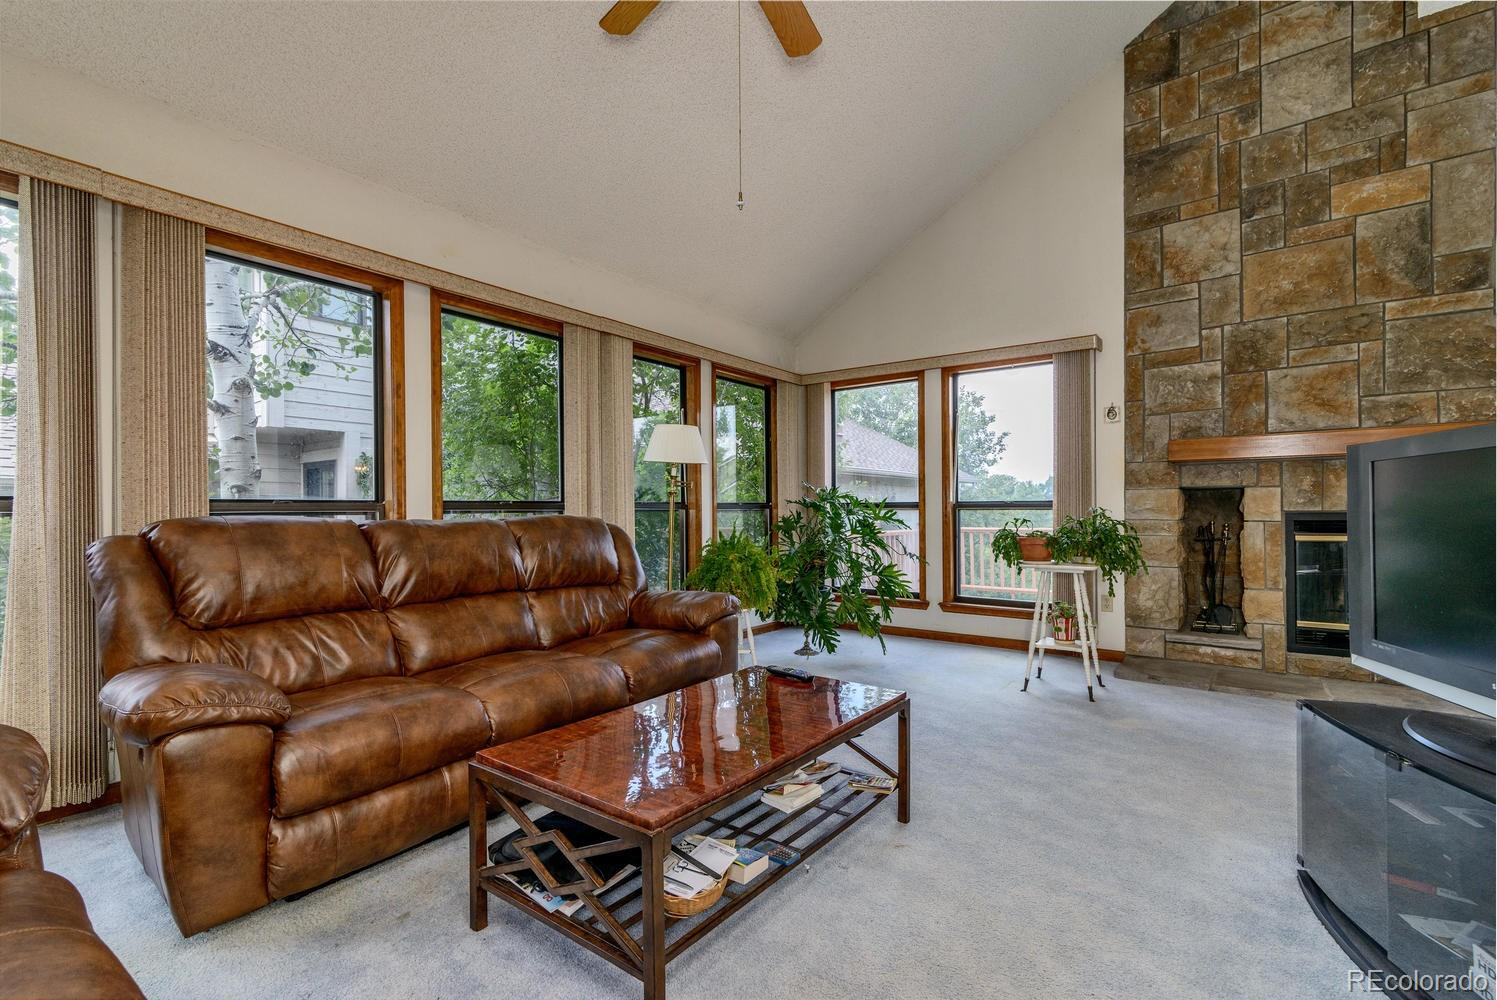 MLS# 5287137 - 11 - 1354 W Briarwood Avenue, Littleton, CO 80120